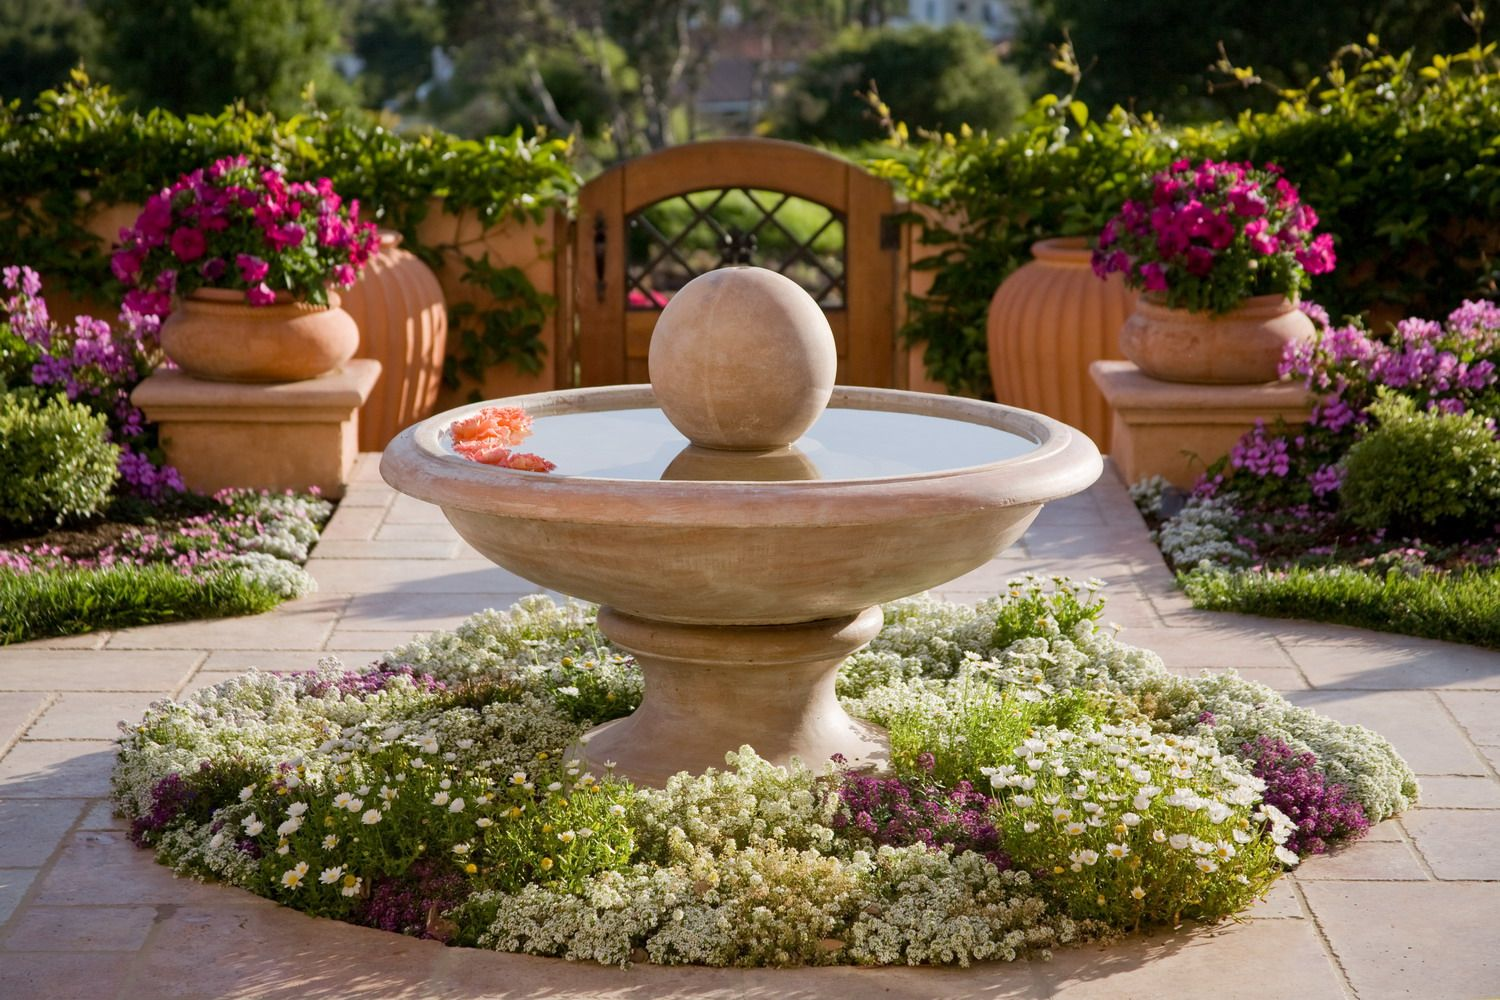 In home garden ideas  Many people see organic gardening as a way to contribute to the safe